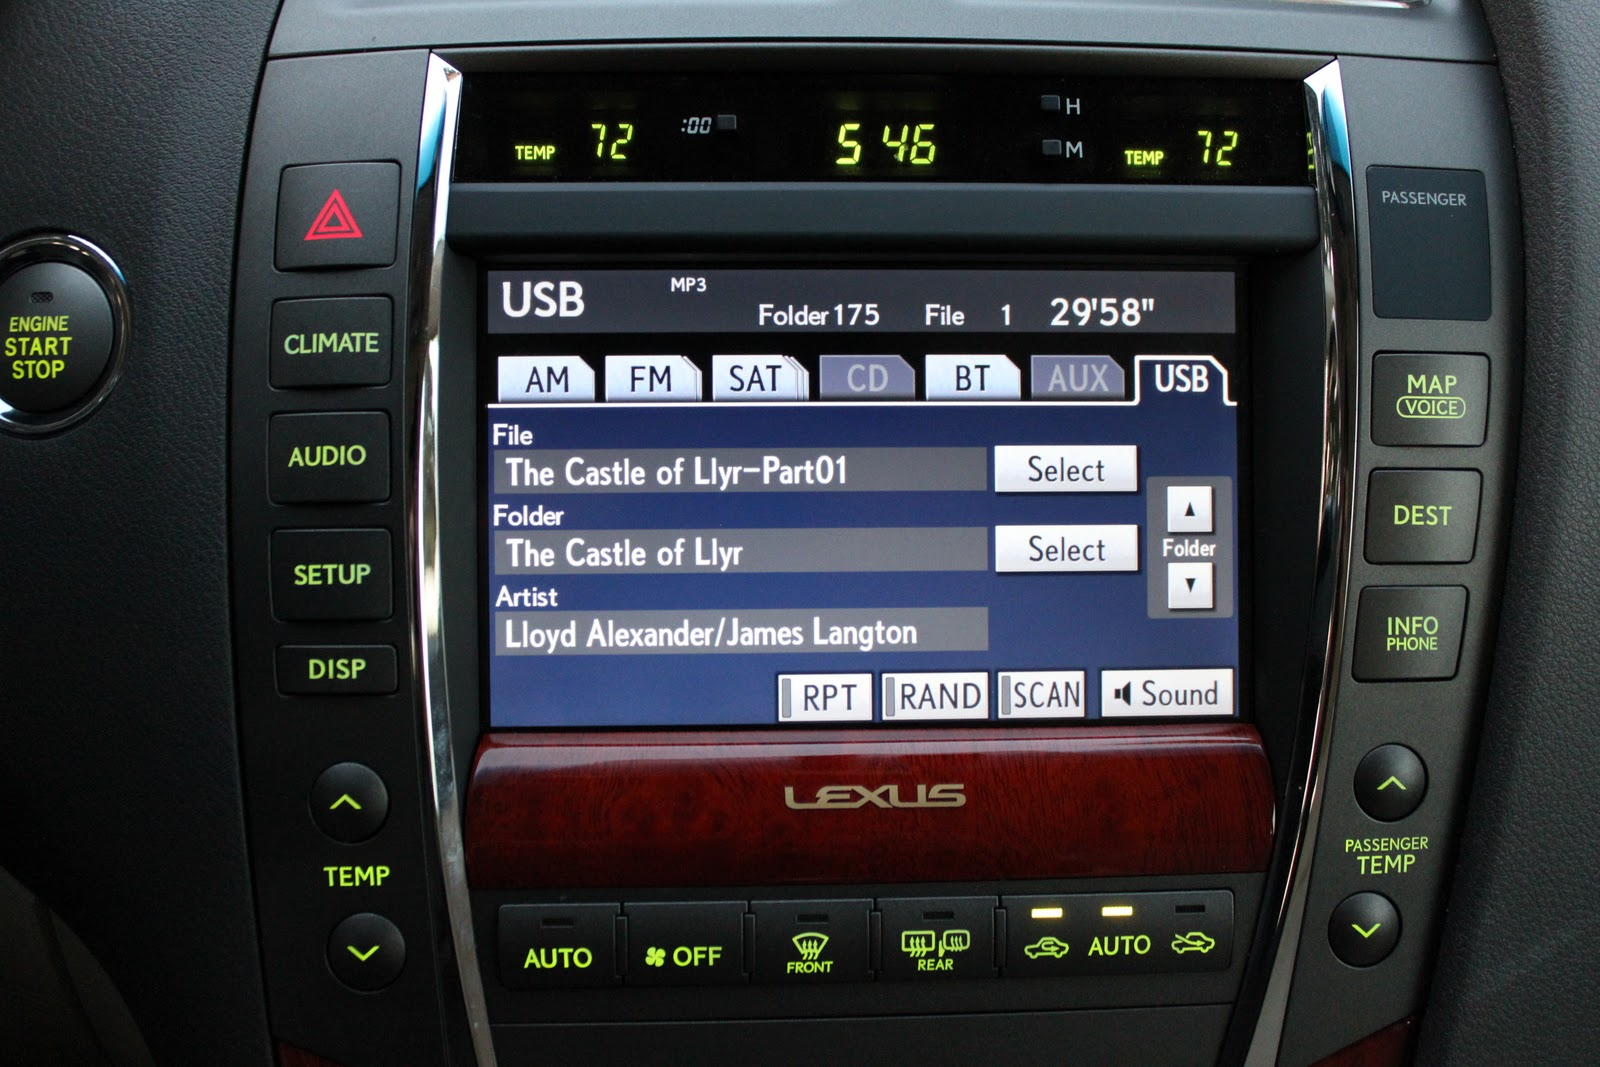 My Life in the Tech World: 2011 Lexus ES 350 Electronics Review